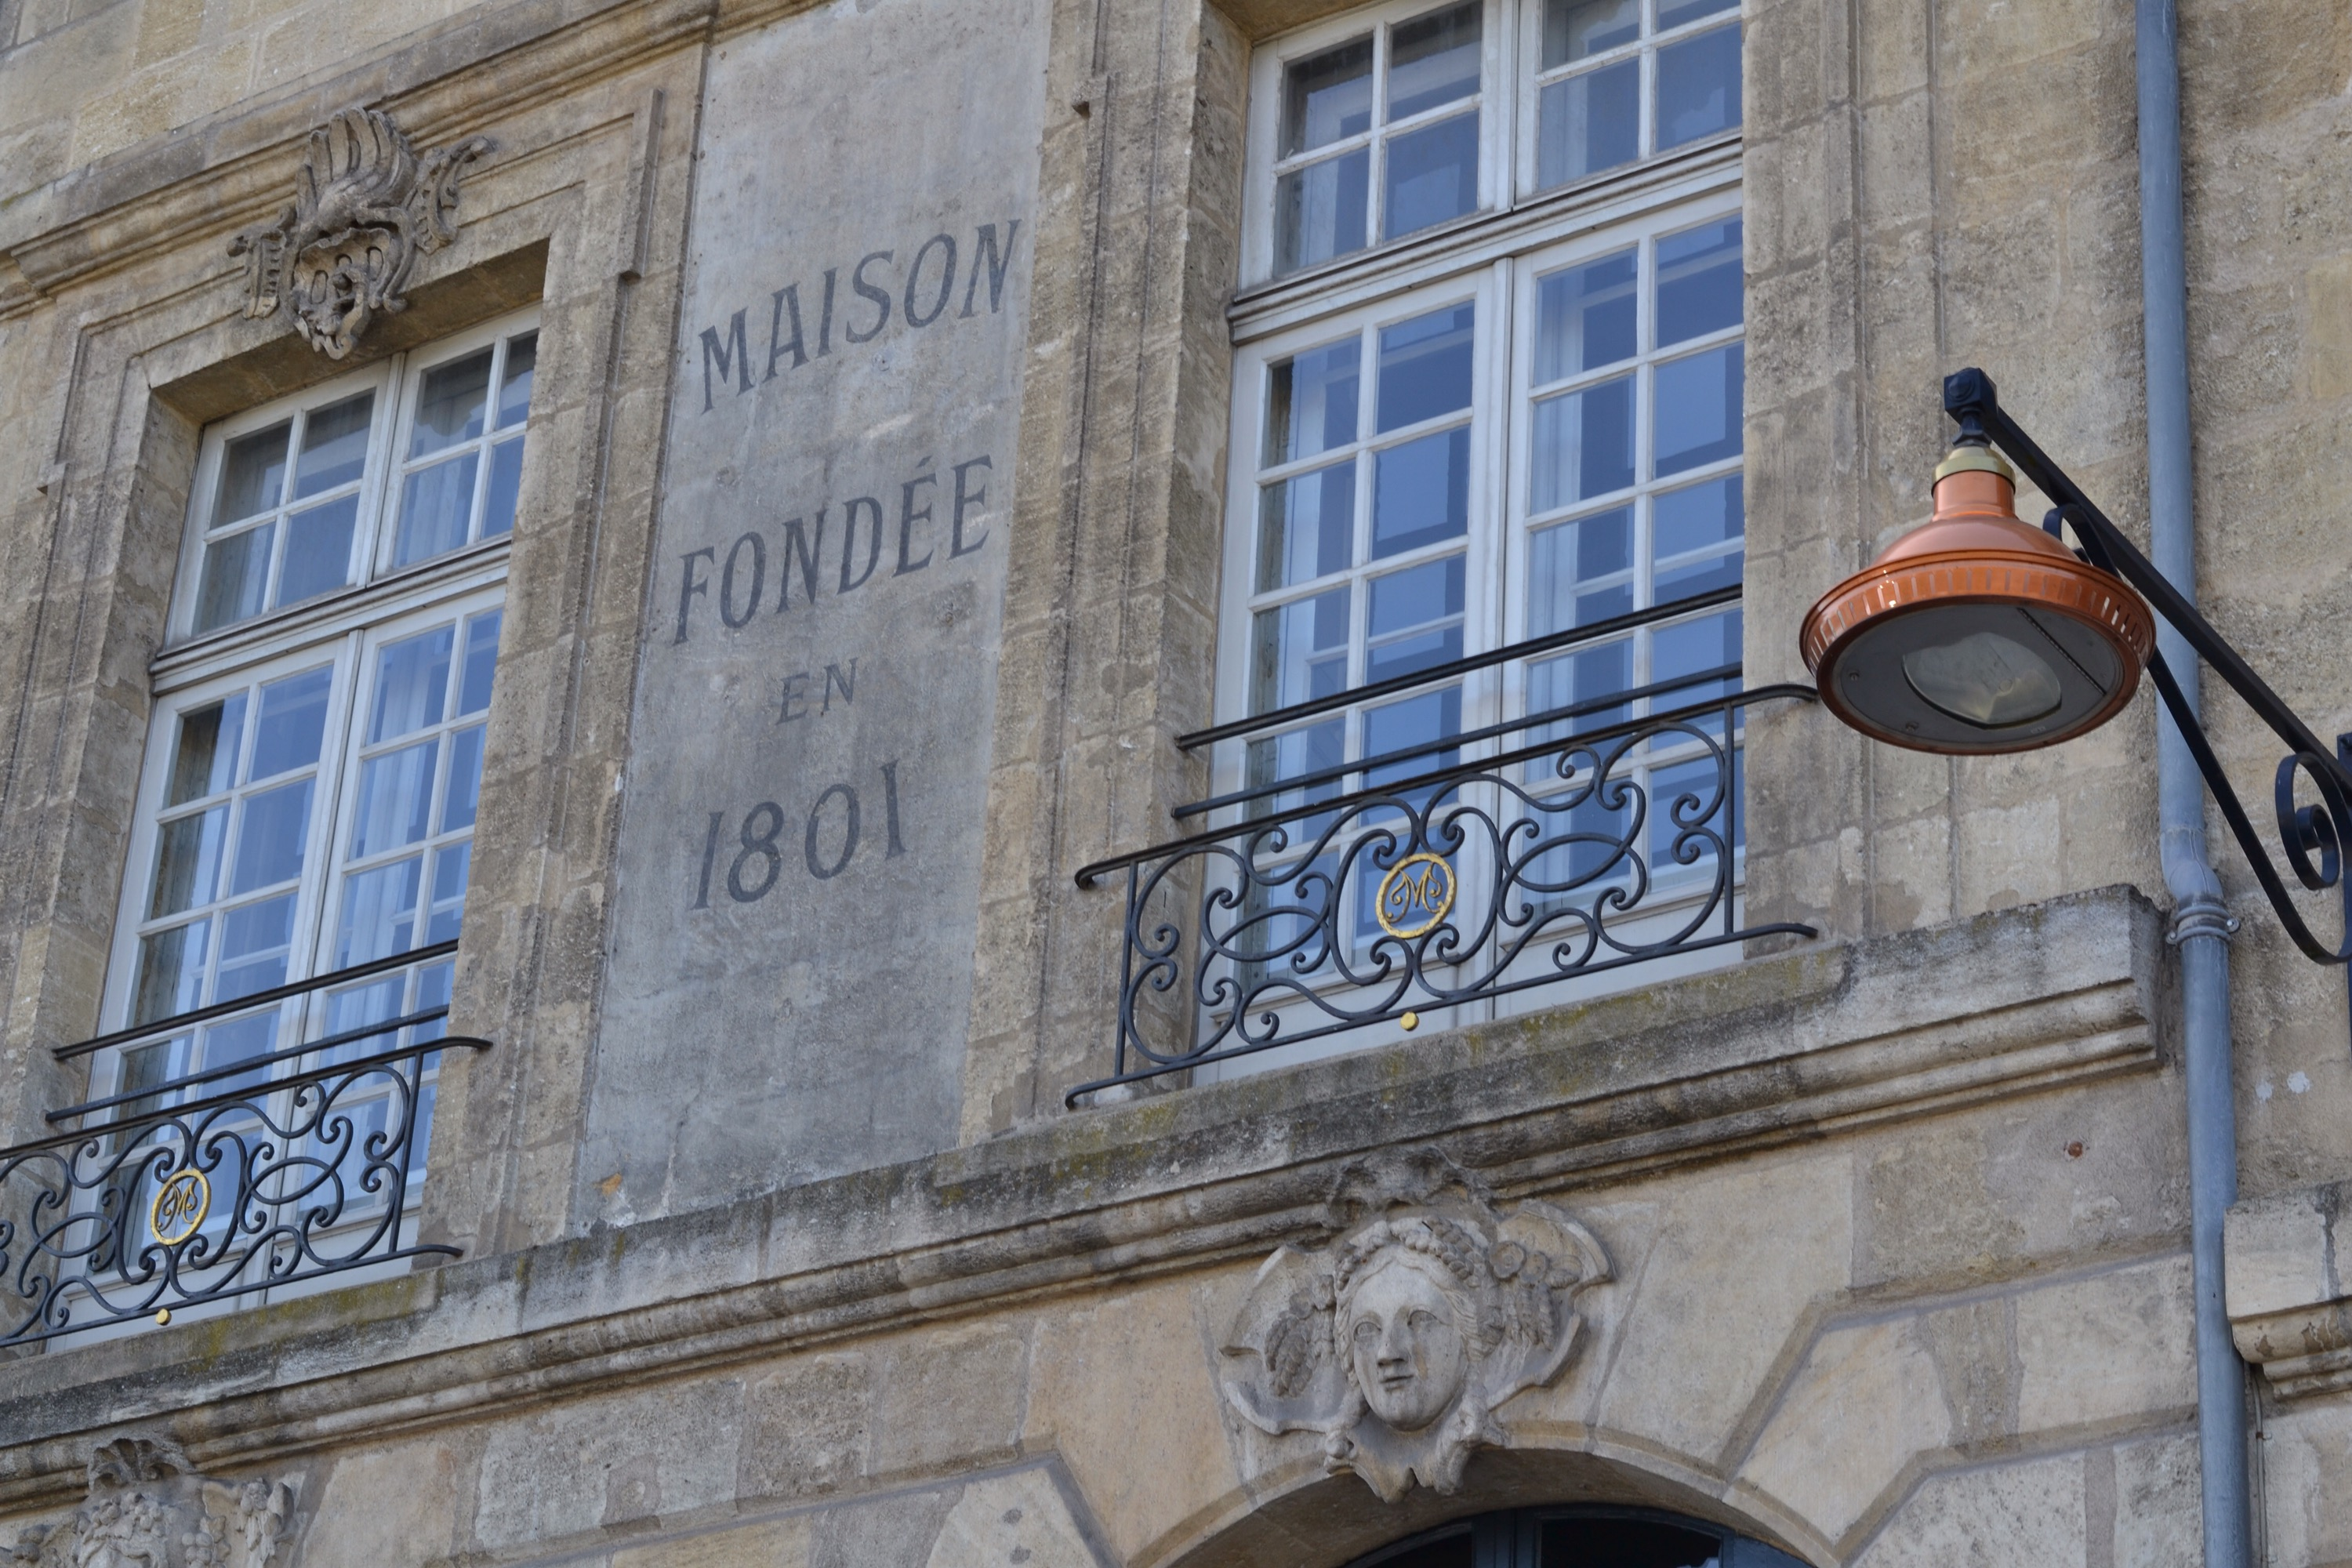 Maison Fondee en 1801. Building in Bordeaux, France